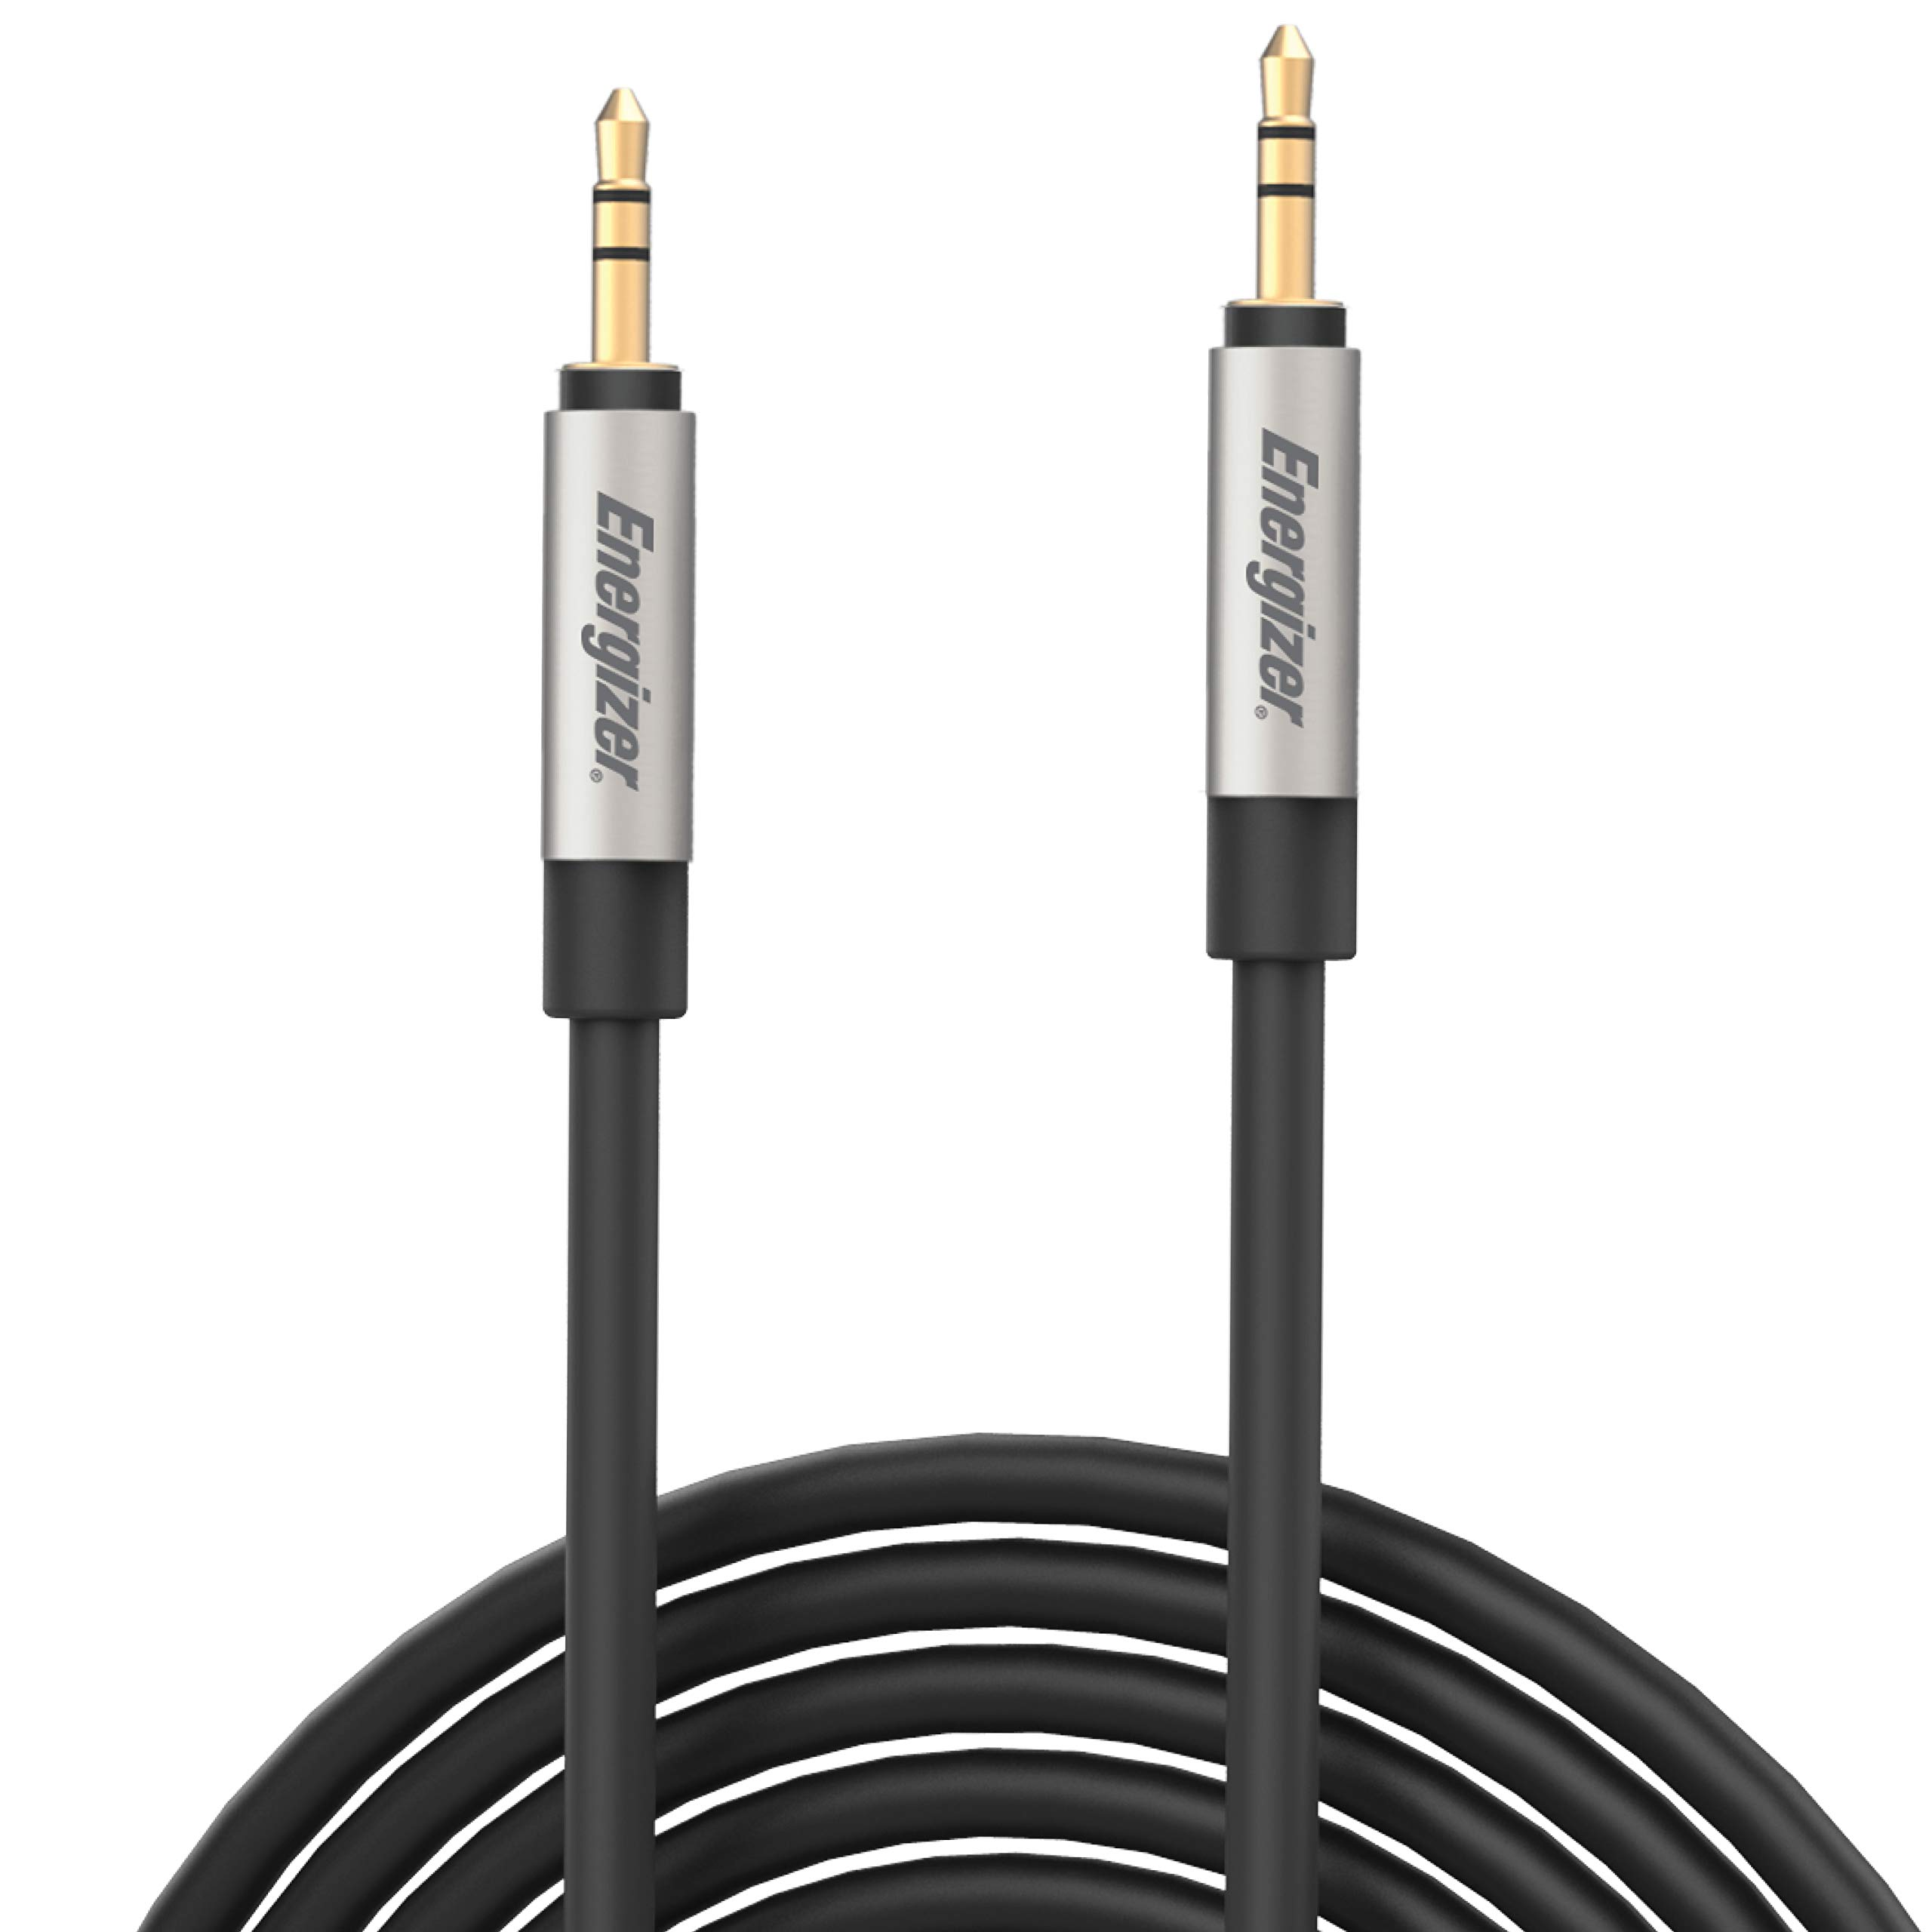 Premier Energizer Ultimate iPhone Car Connector AUX Cable to AUX or to Lightning Cord MFi Audio Link Headphone Jack Auxiliary Adapter 3.5 mm Nylon Braided Metal Tip, 4ft 6ft 10ft